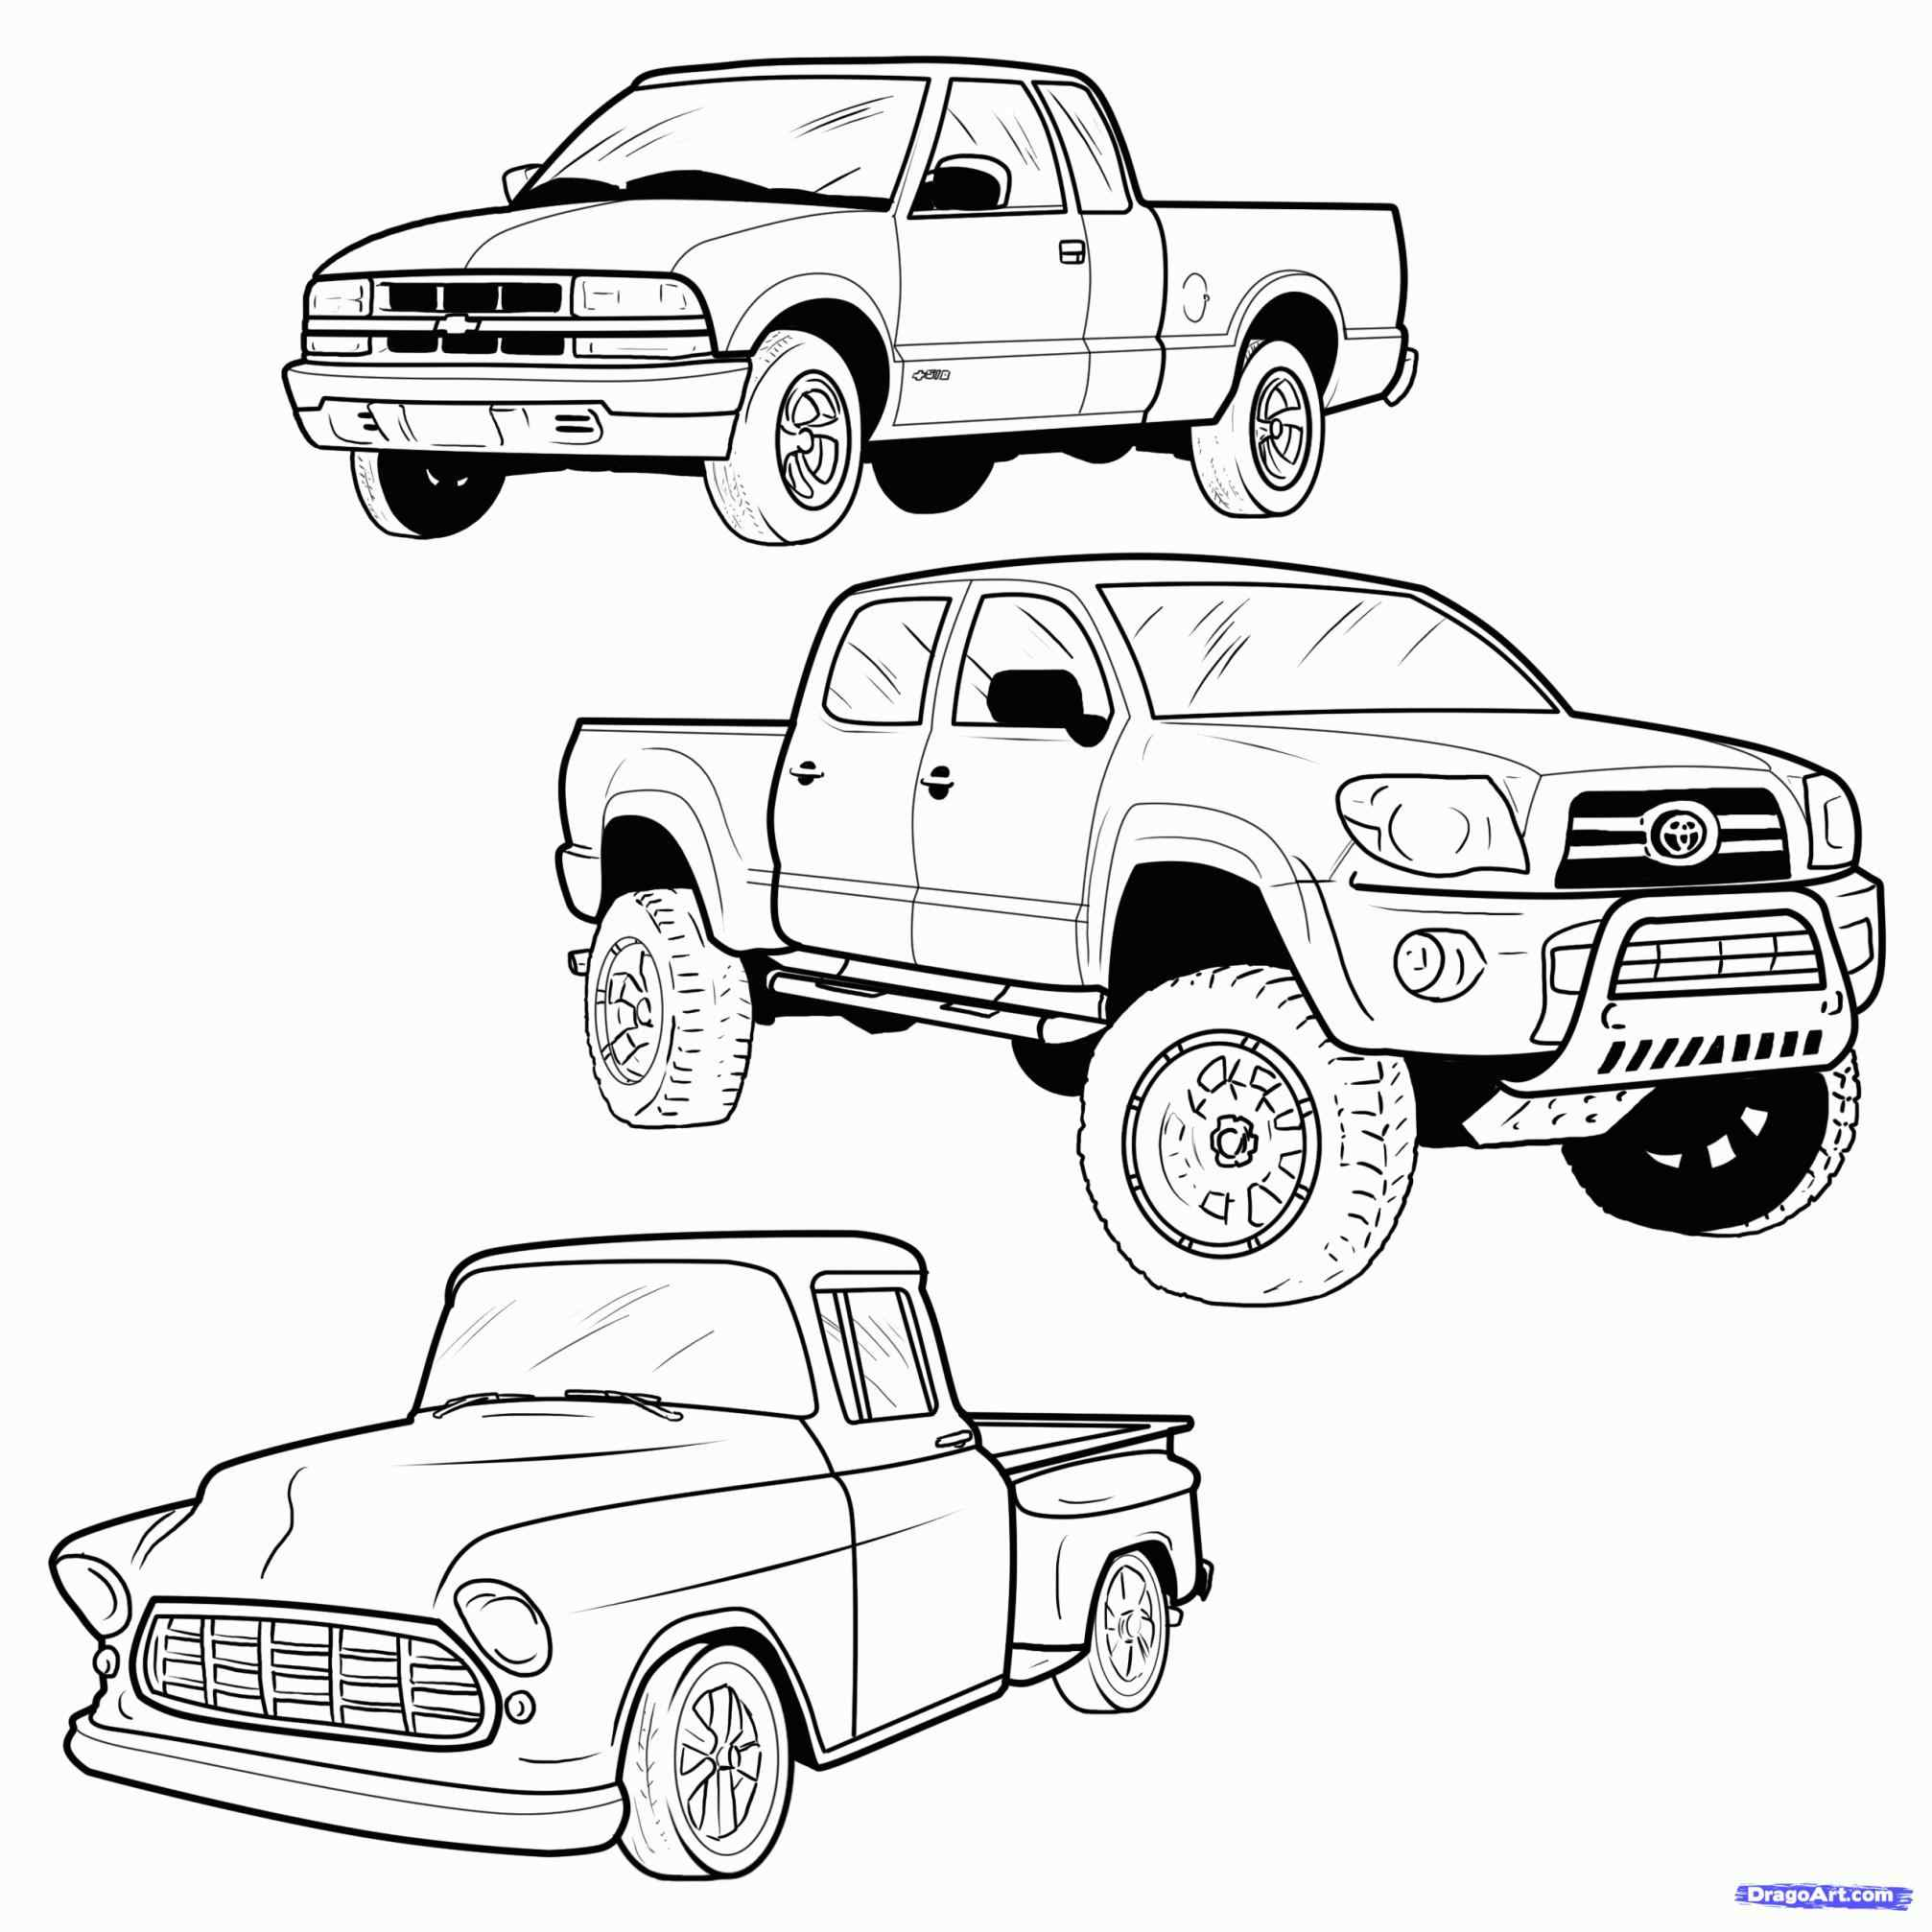 chevy truck drawing at getdrawings free for personal use chevy OBS Silverado 2014x2014 57 chevy truck coloring pages online coloring printable